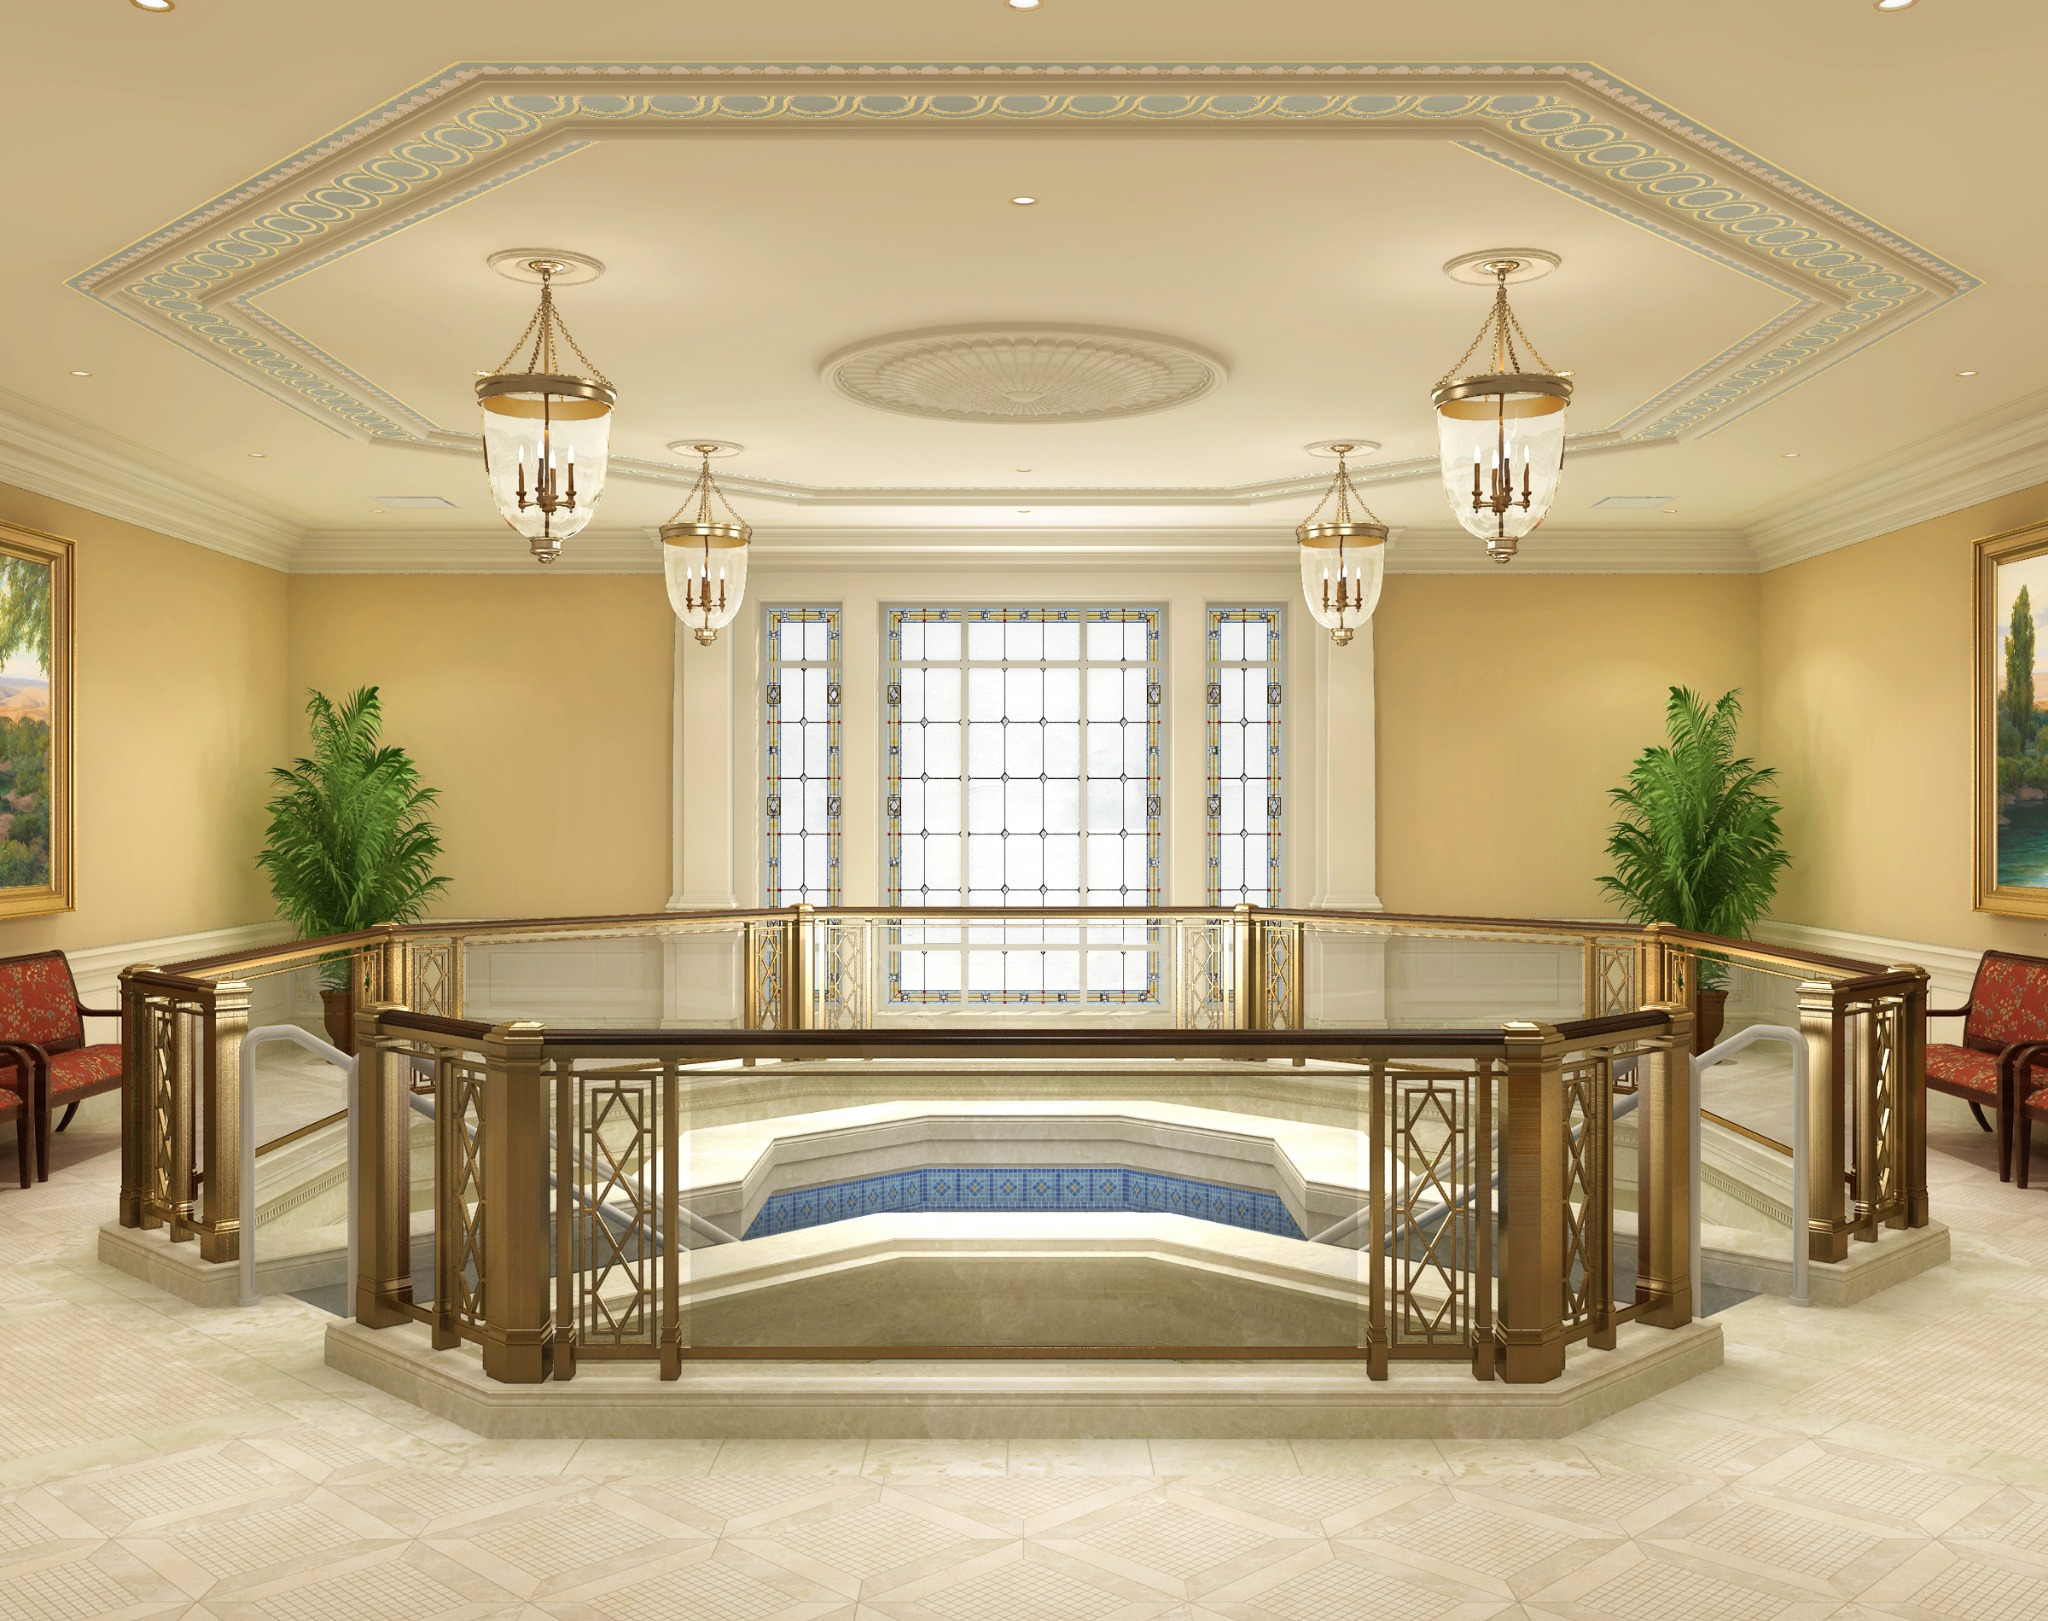 Rendering of the baptistry in the Richmond Virginia Temple